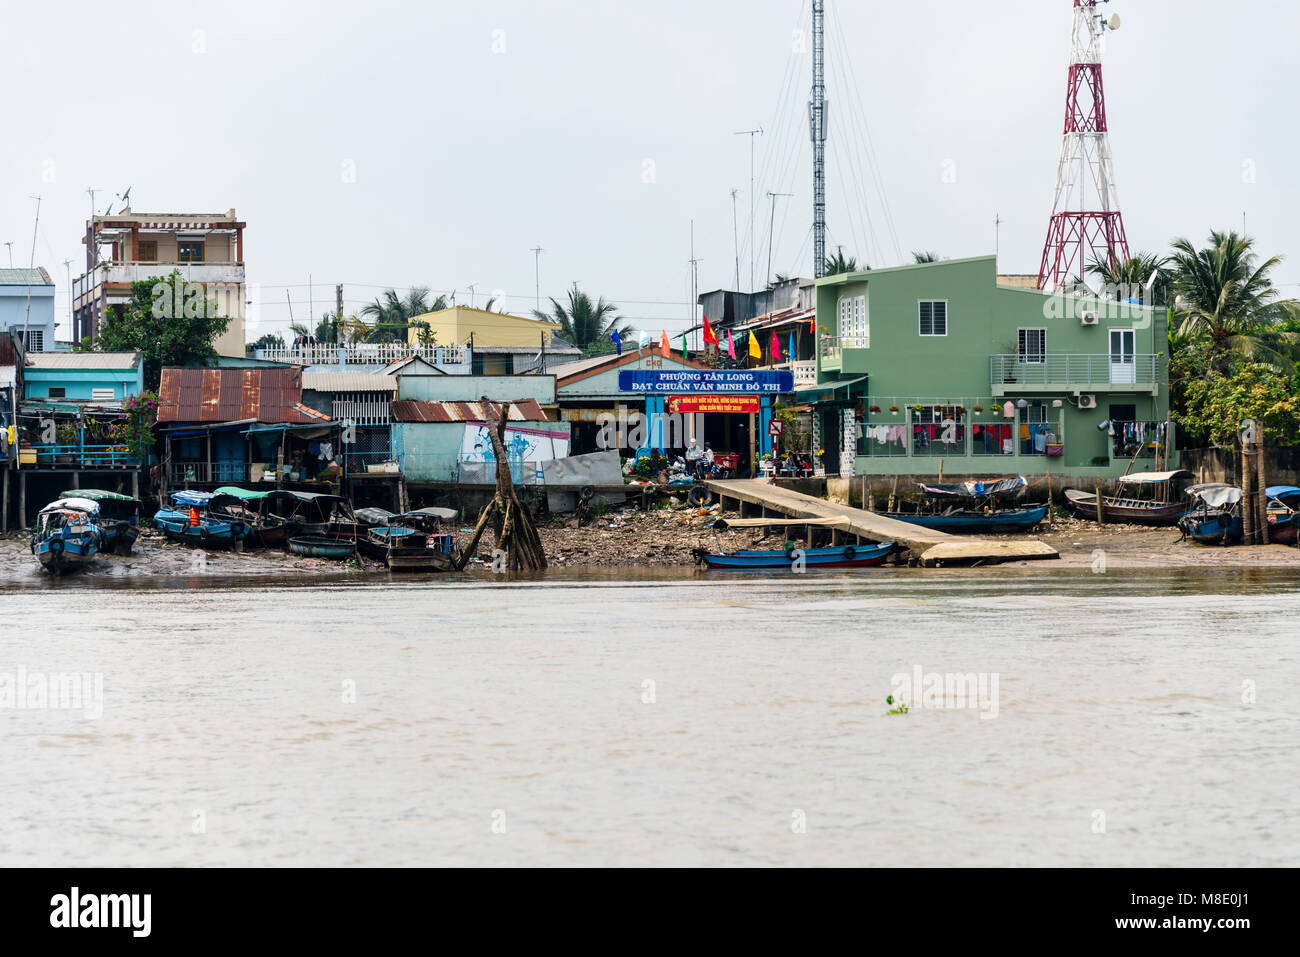 Boats, shops and makeshift houses on the bank of the Meekong River, Vietnam - Stock Image